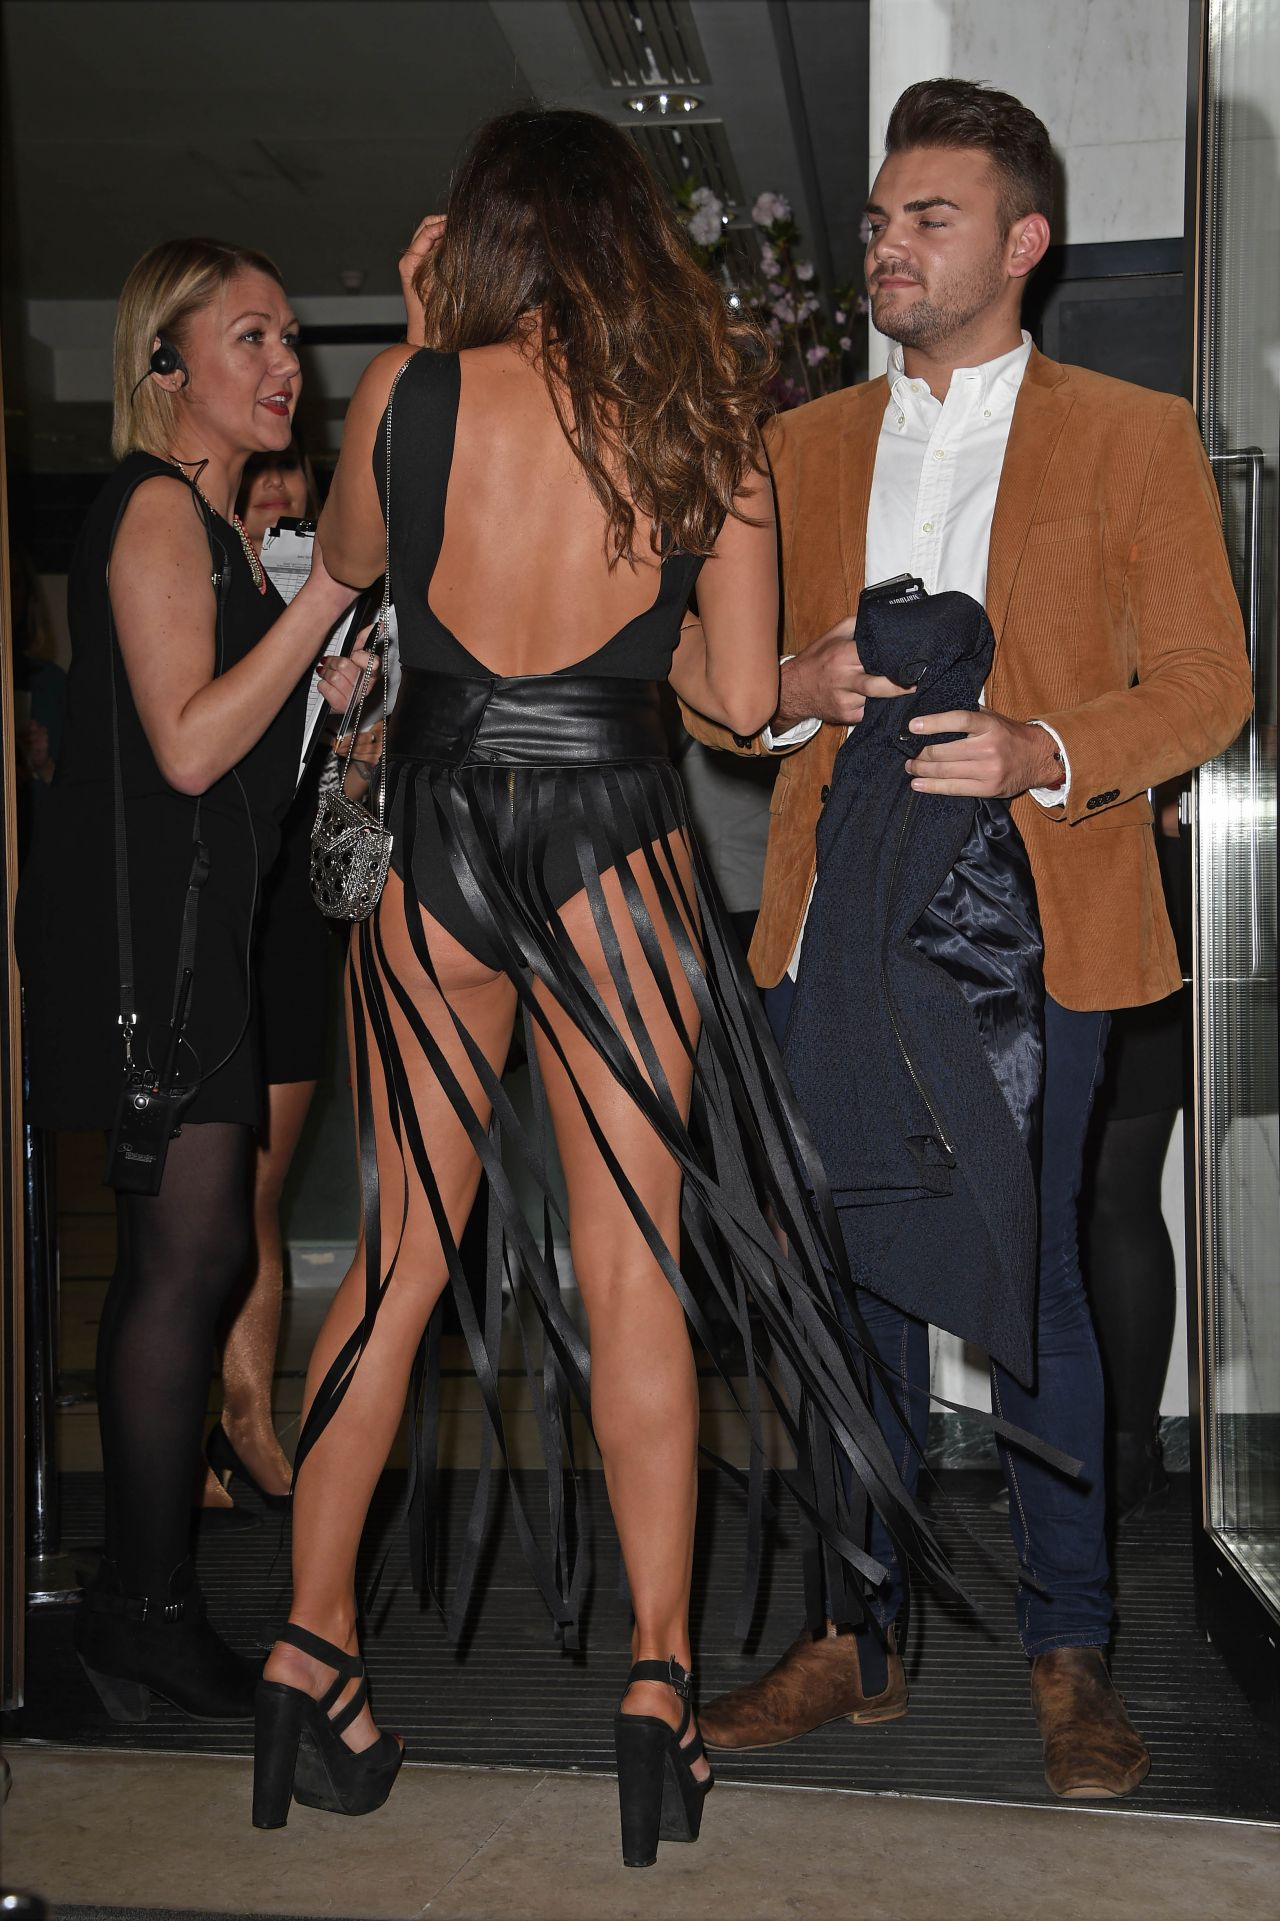 Pascal Craymer Jog On To Cancer Event In London April 2015